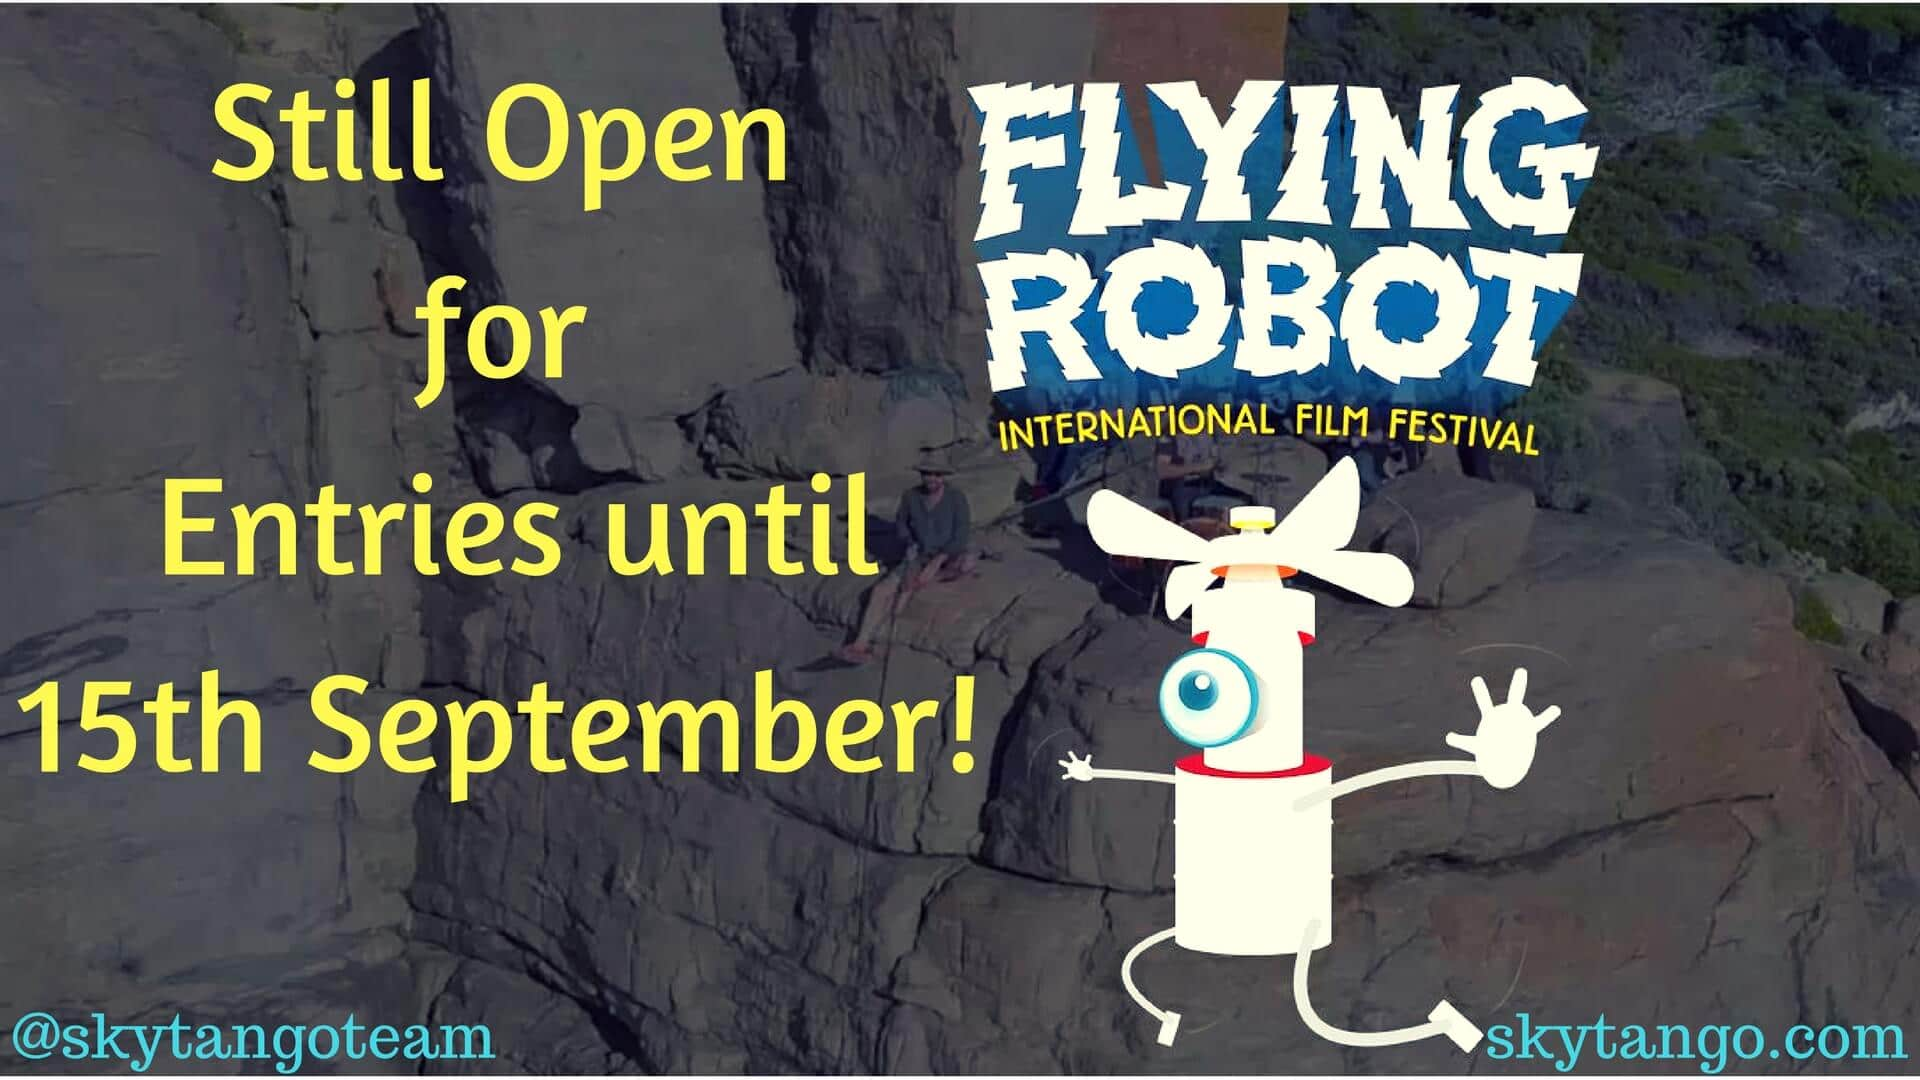 flying-robot-international-film-festival-still-open-for-entries-until-15th-september